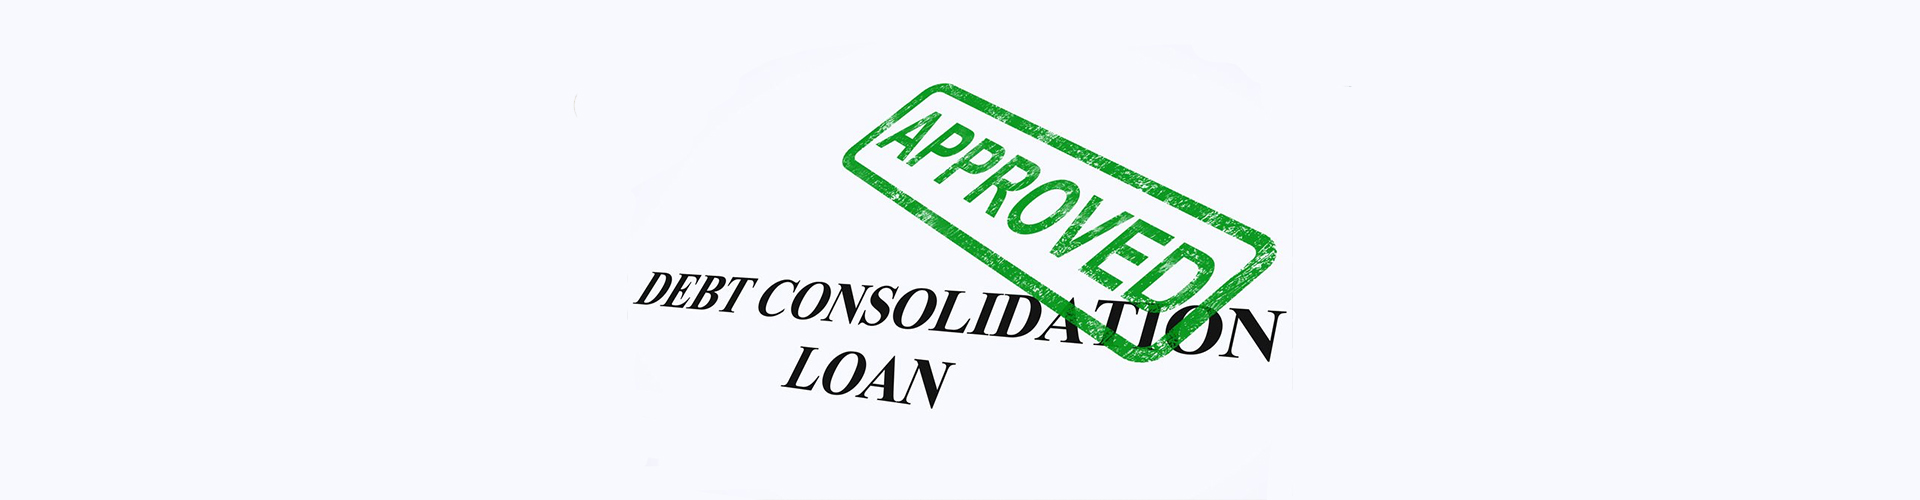 debt consolidation home loan